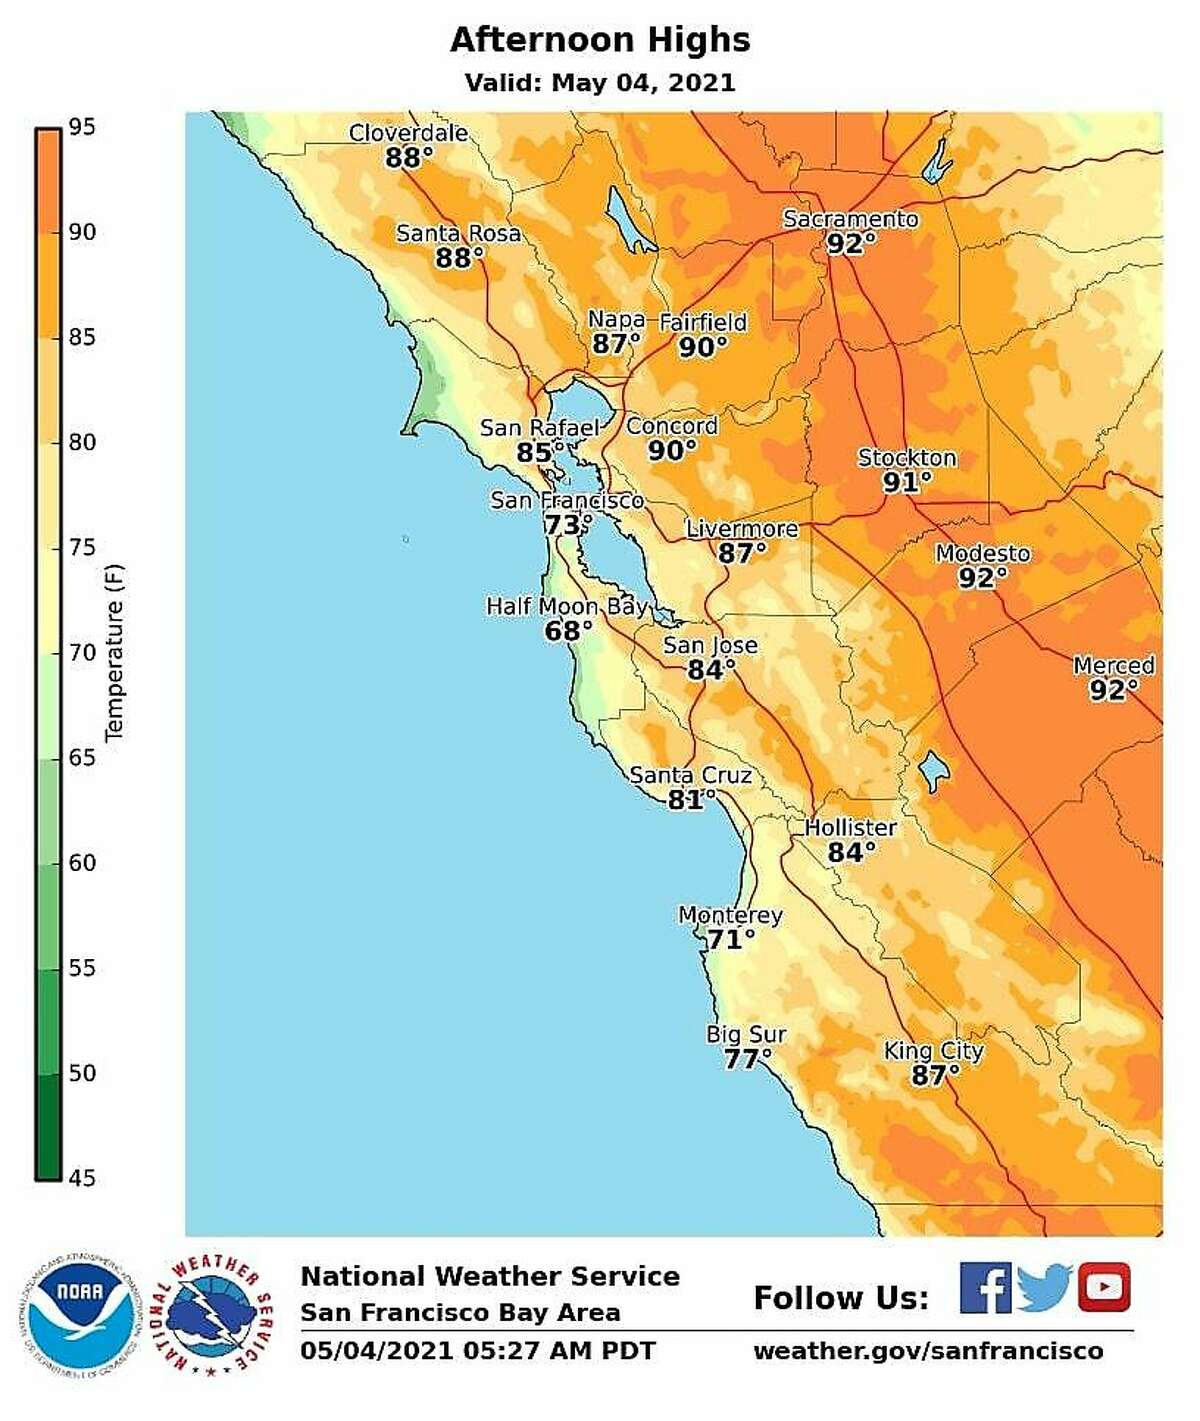 National Weather Service forecast for Tuesday calls for more warm weather.